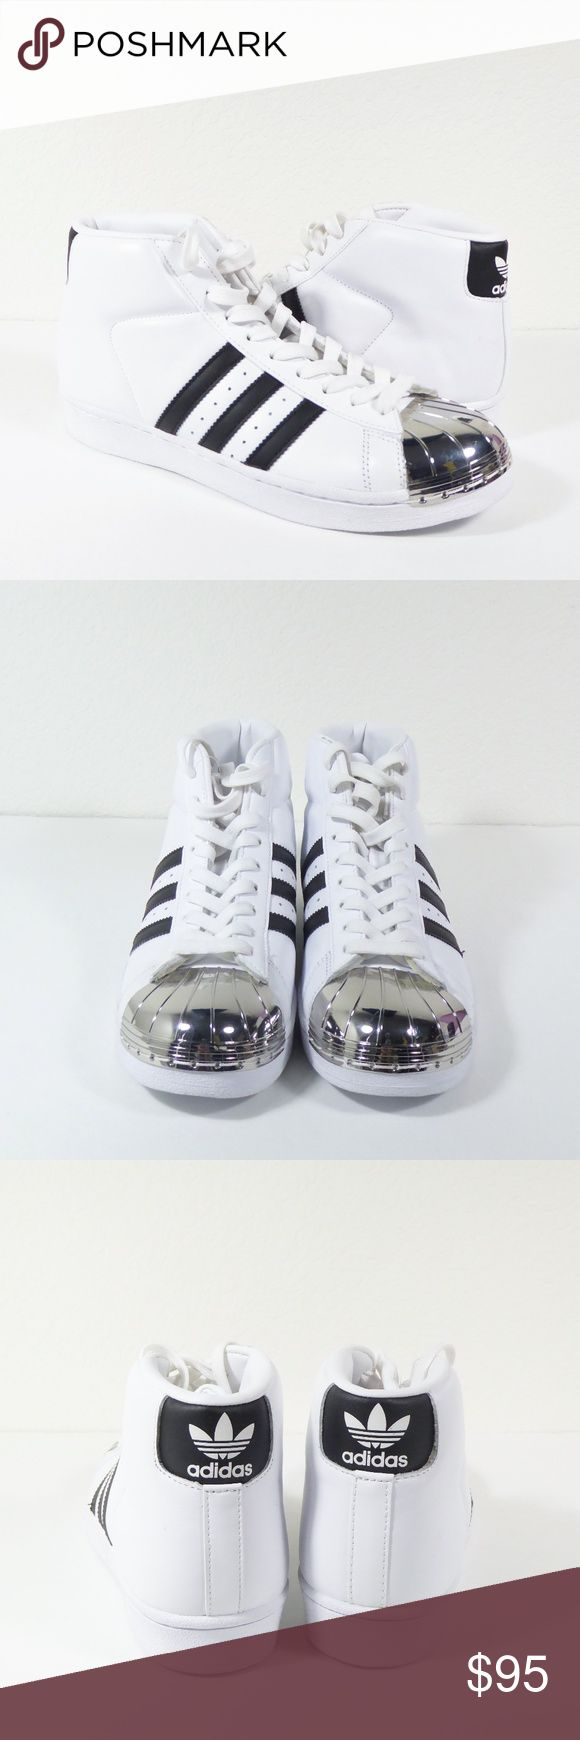 NEW Adidas Pro Model Metal Toe Sneakers Hi Tops New without Tags Women's Adidas Originals Pro Model Metal Toe Sneakers (ART BB2131). White leather with iconic black Adidas stripes. Chic silver metal toe caps. Lace up, high tops. Retailed $110.  Size Women's Size 7  New without Tags/No original shoe box. Please note scratches on metal toe caps due to store wear. Light signs of wear on sole from in-store customer try-ons. Please see photos above.  No Trades. Reasonable Offers Welcome. adidas…